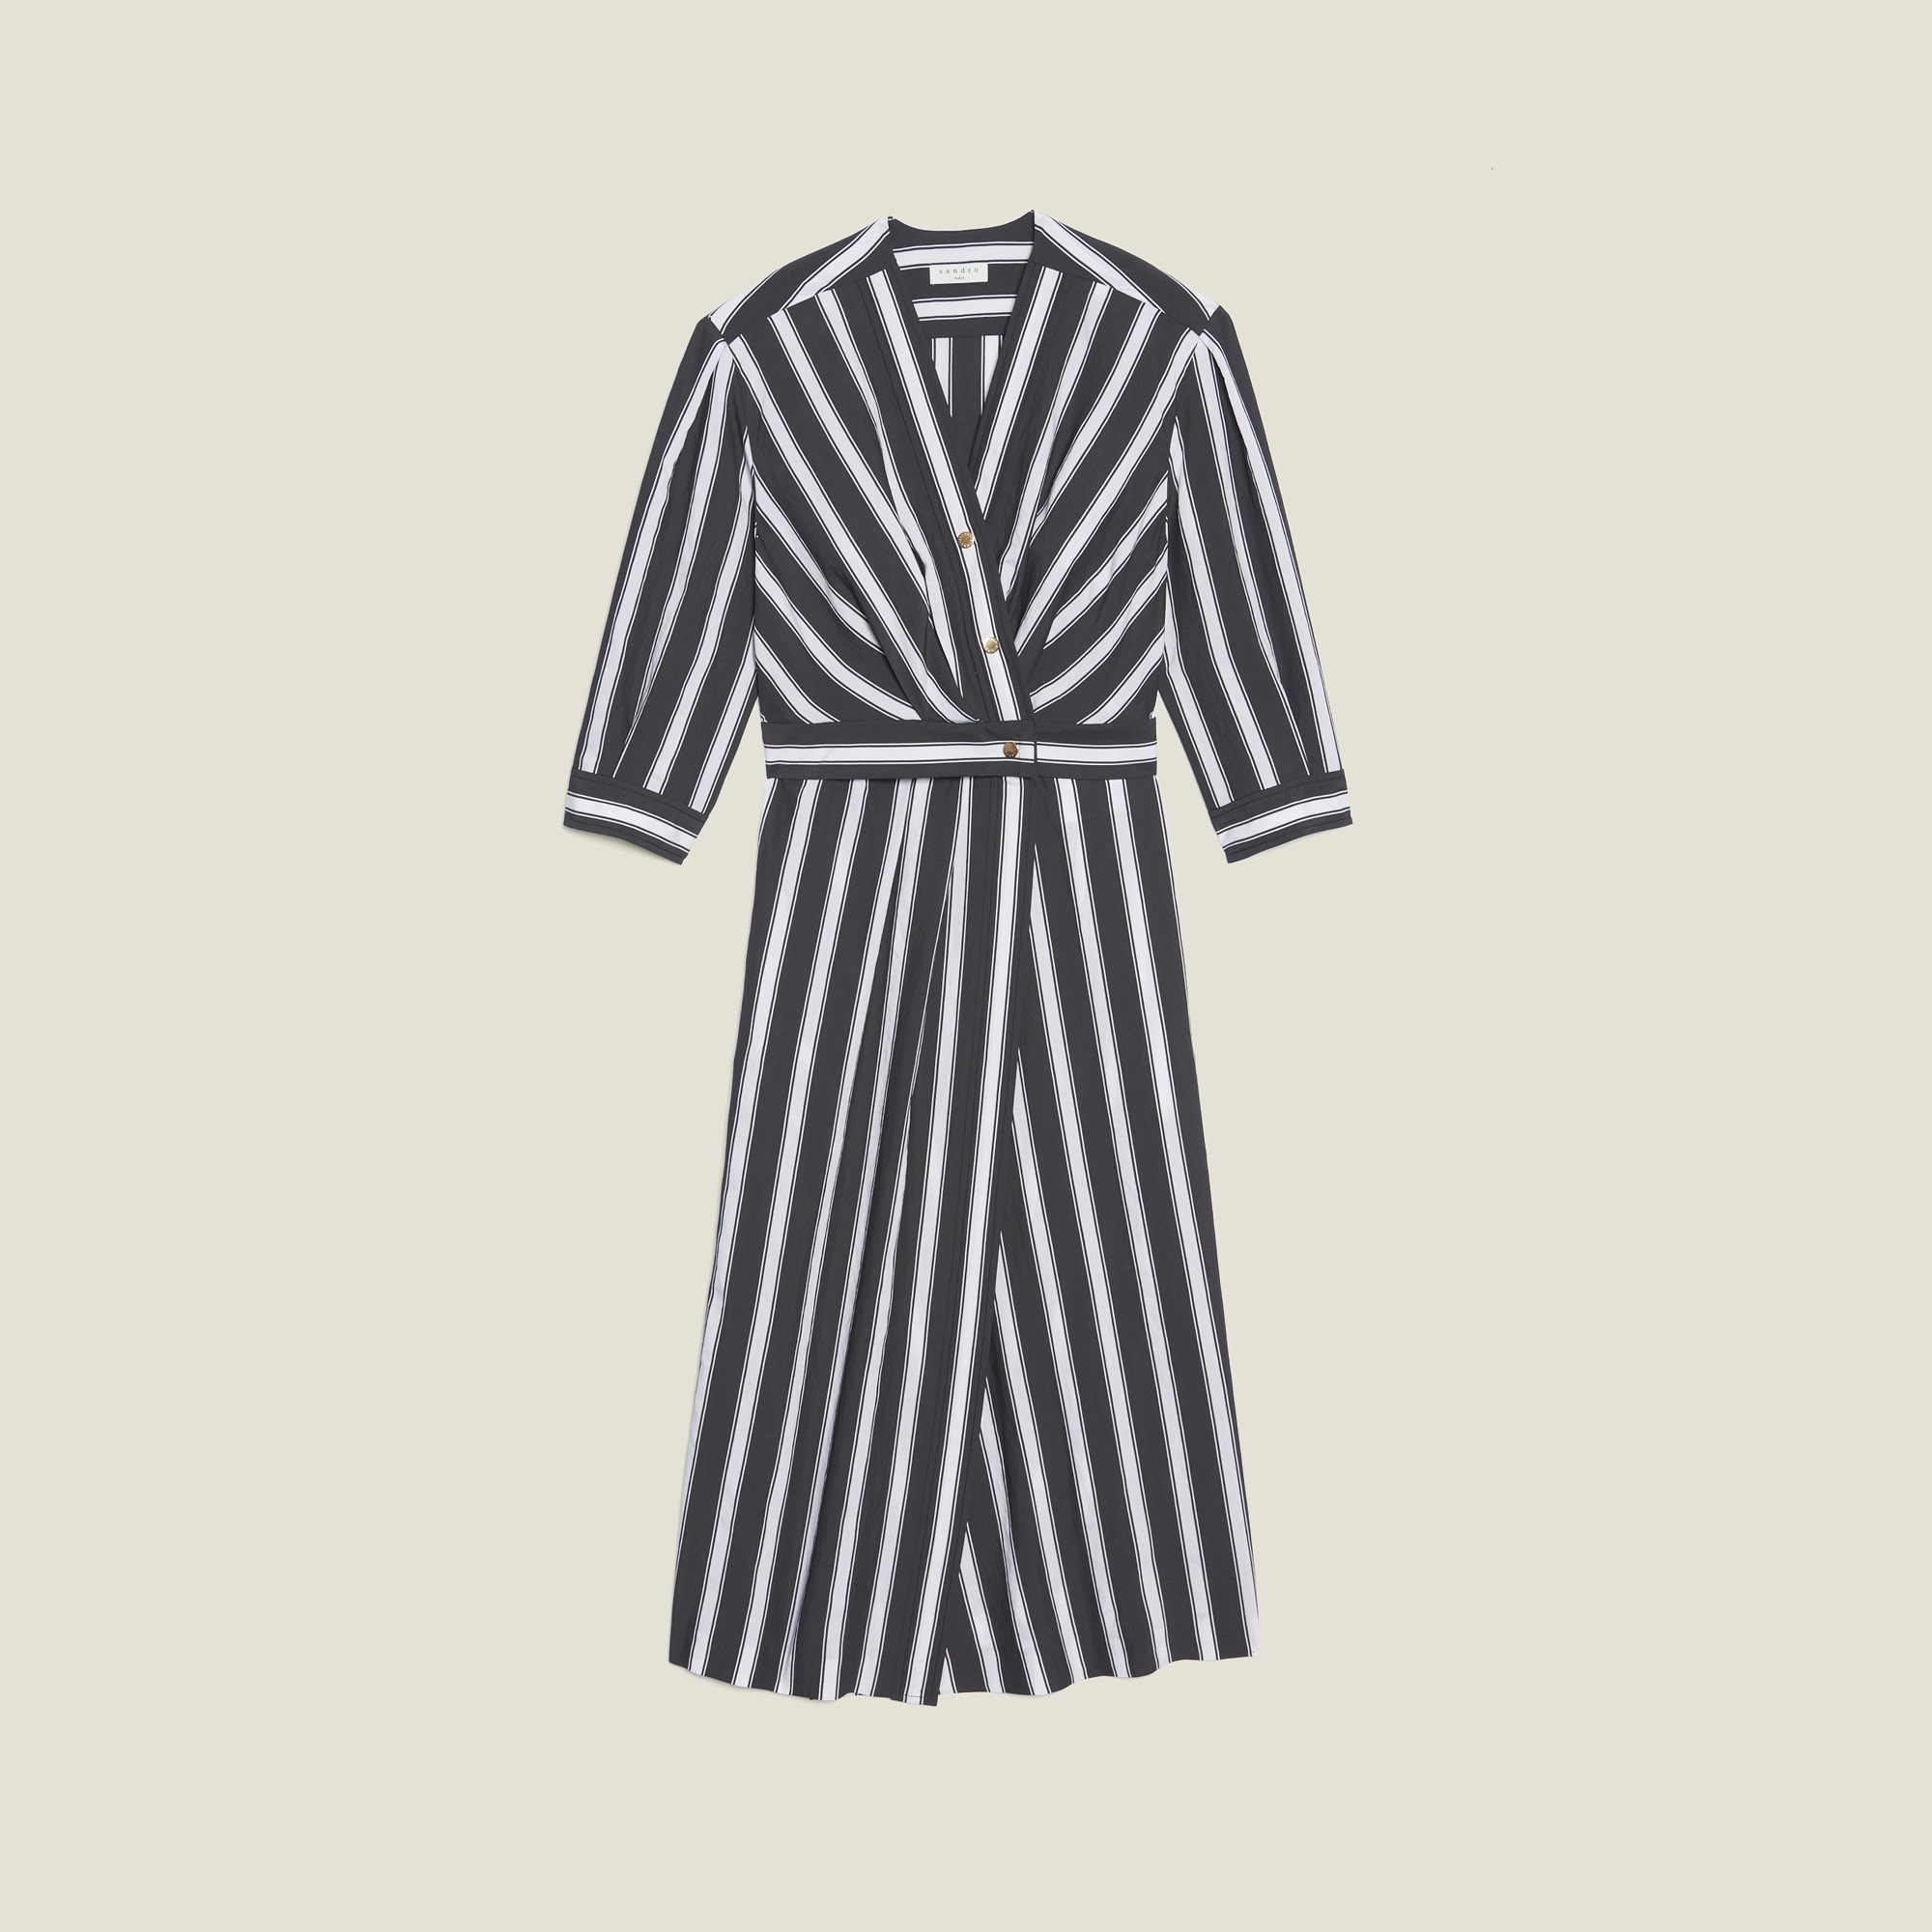 aa26772fff9 ... Midi Dress With Contrasting Stripes   Dresses color Black